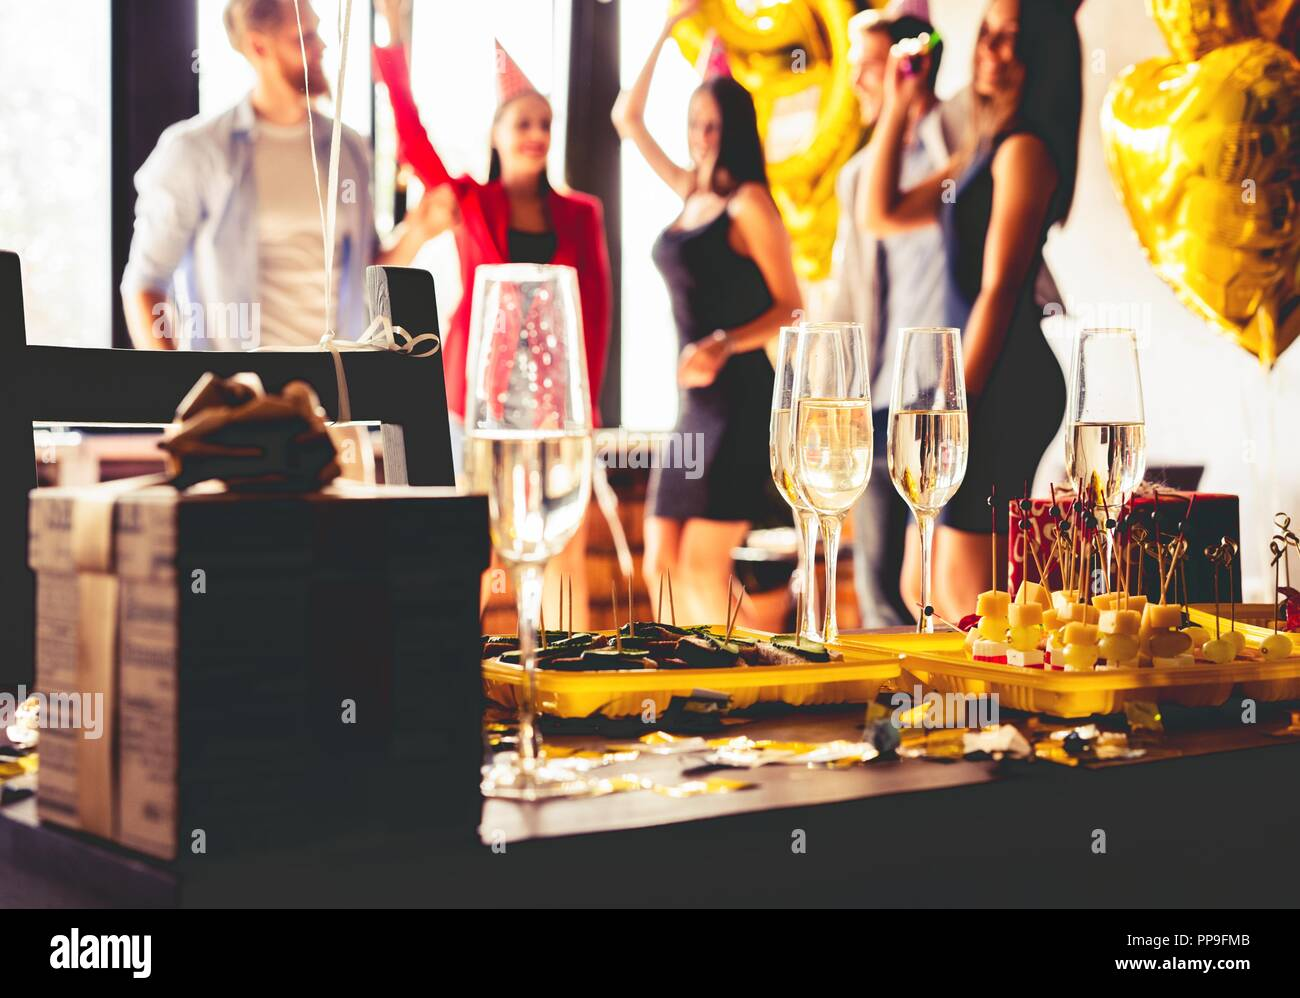 Buffet Dinner Dining Food Celebration Party Concept. - Stock Image